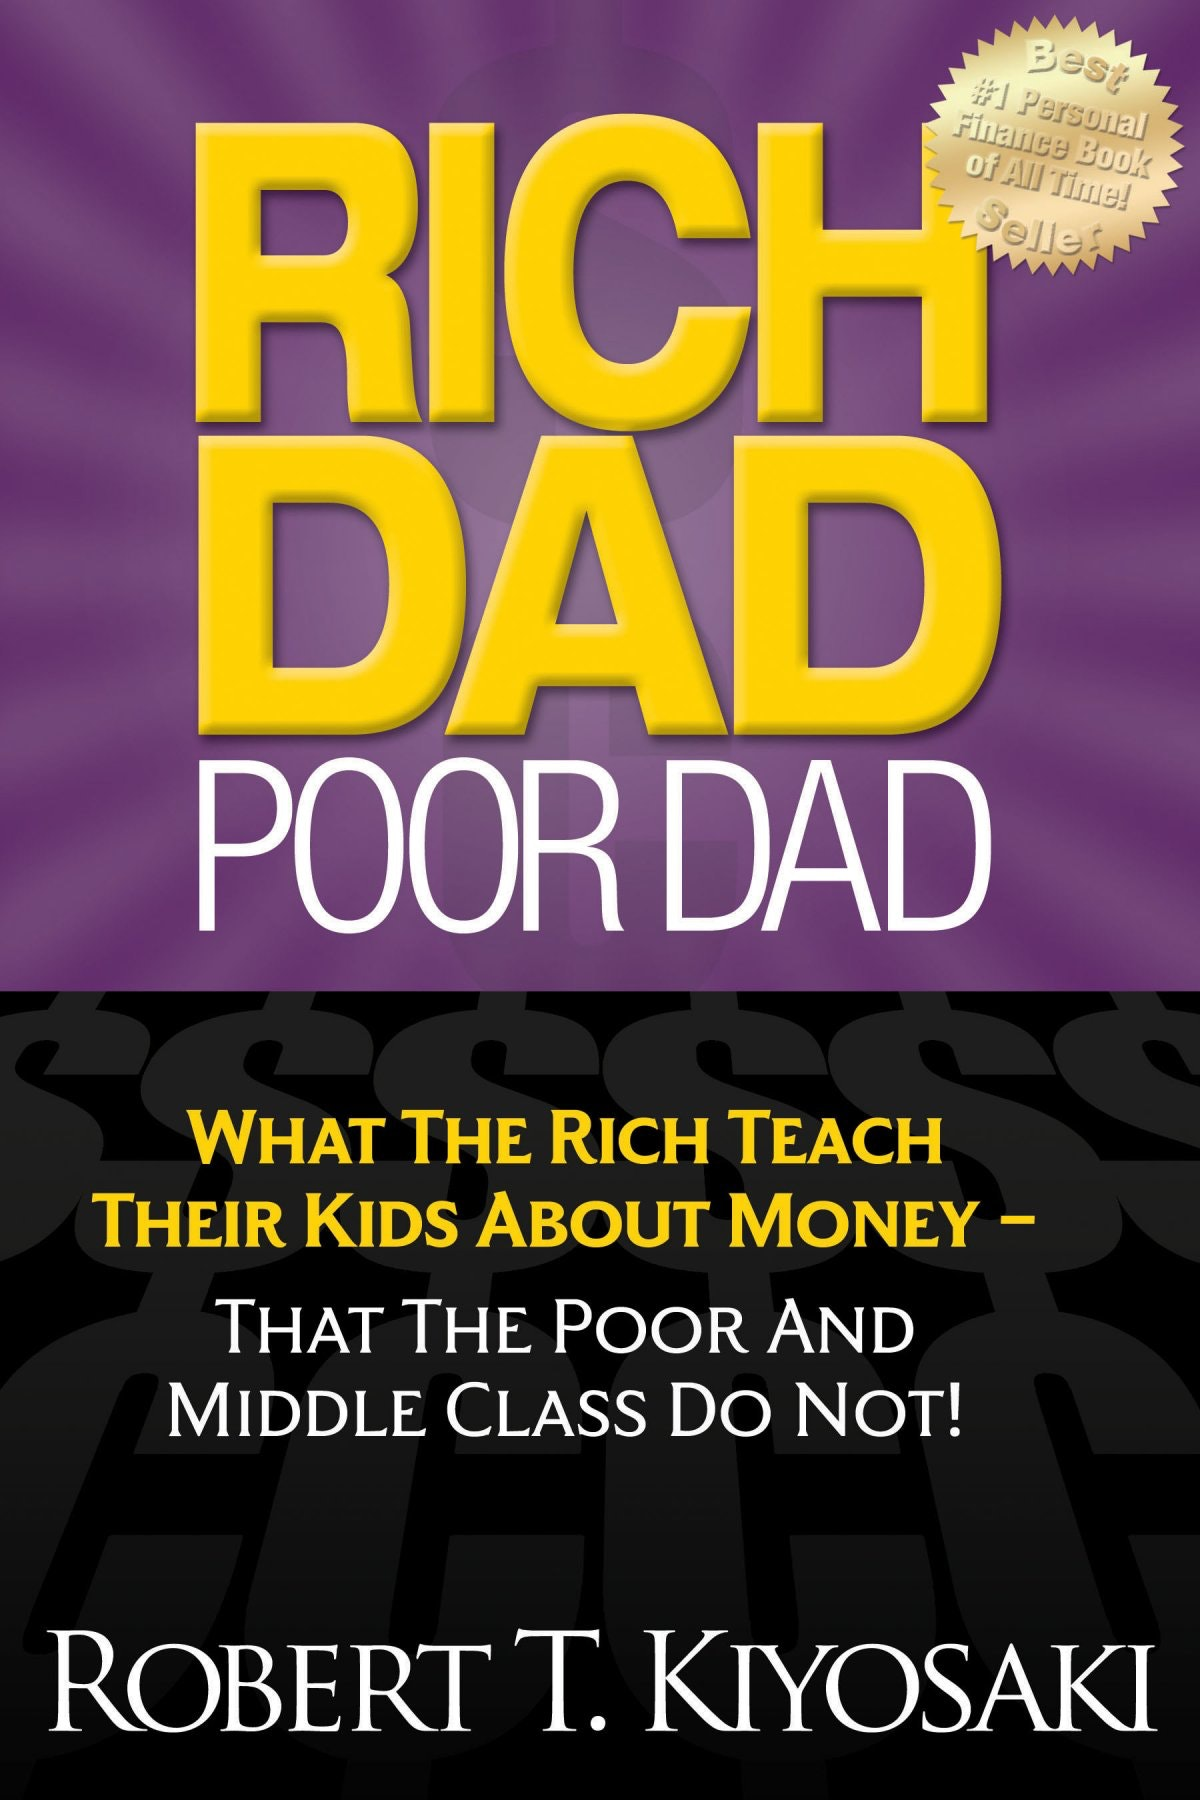 Rich Dad Poor Dad – Robert T. Kiyosaki